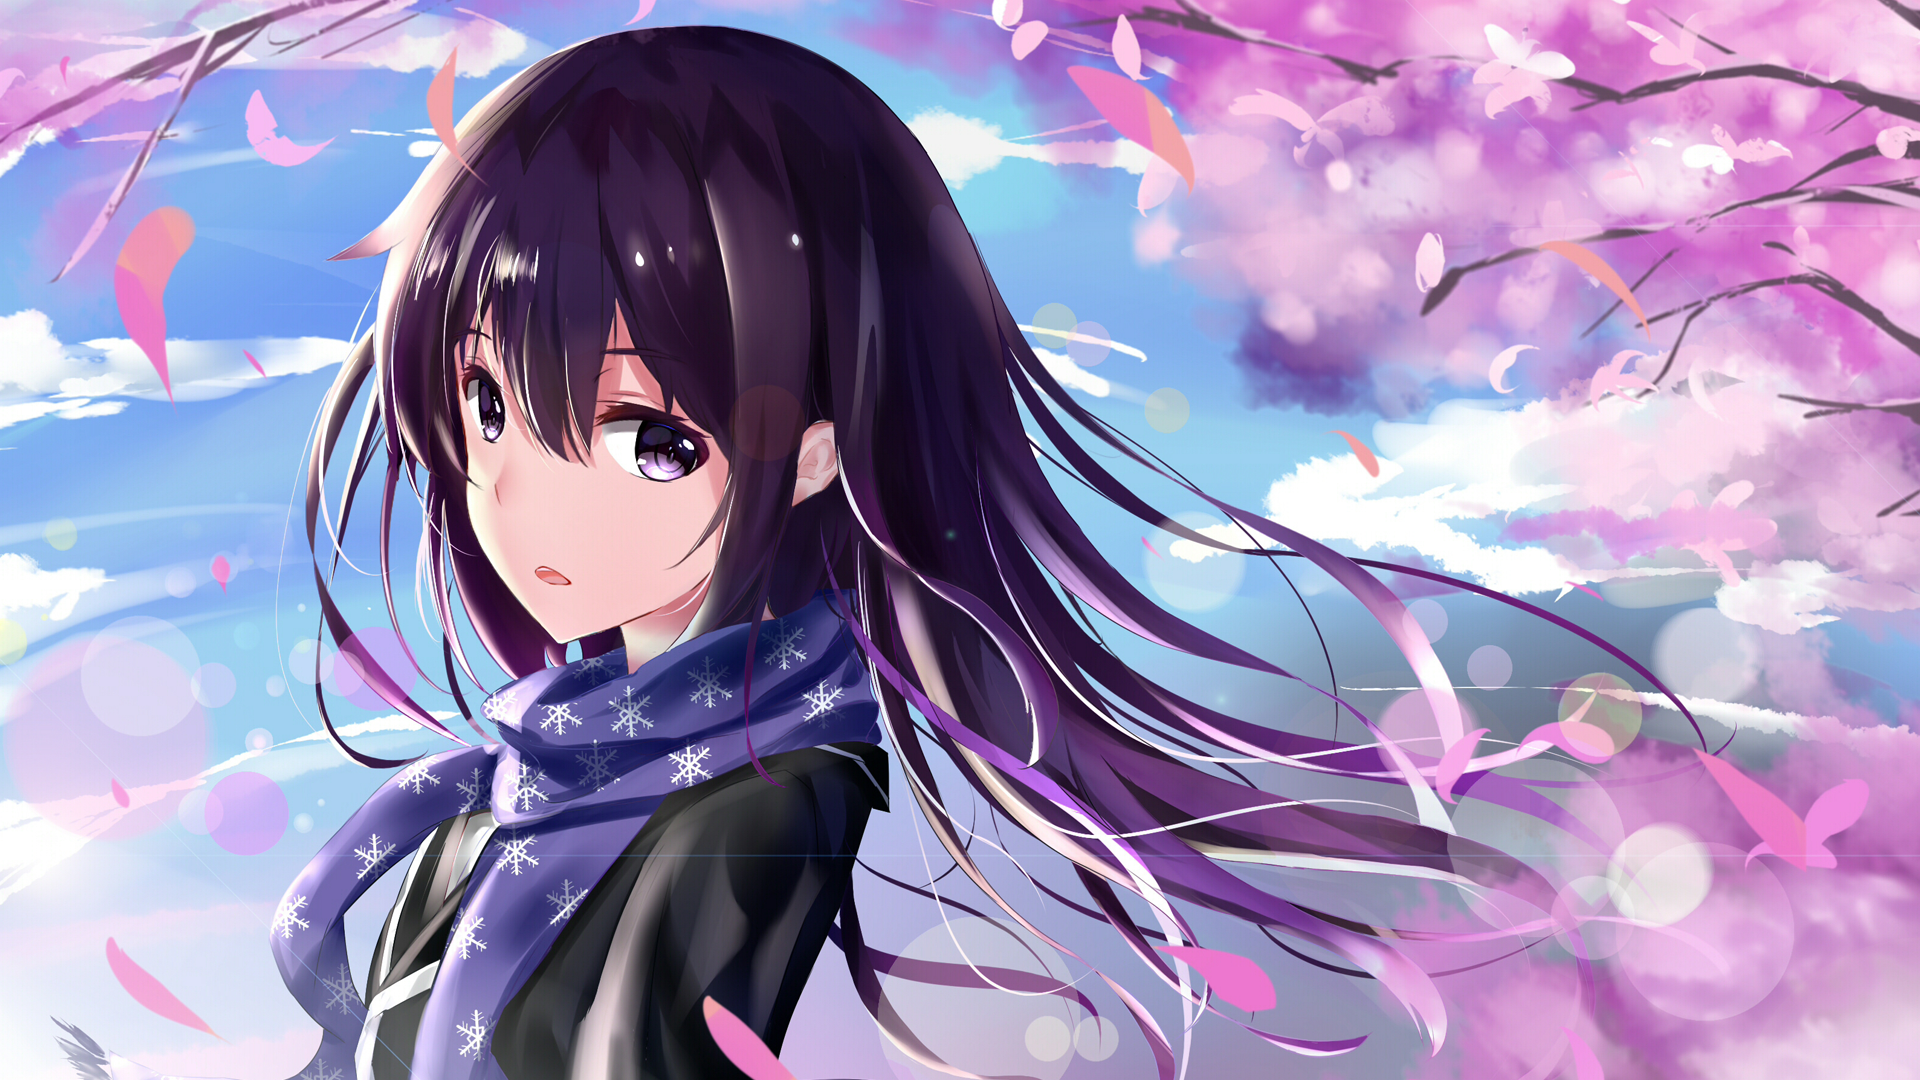 Download Purple Anime Girl Wallpaper HD Backgrounds